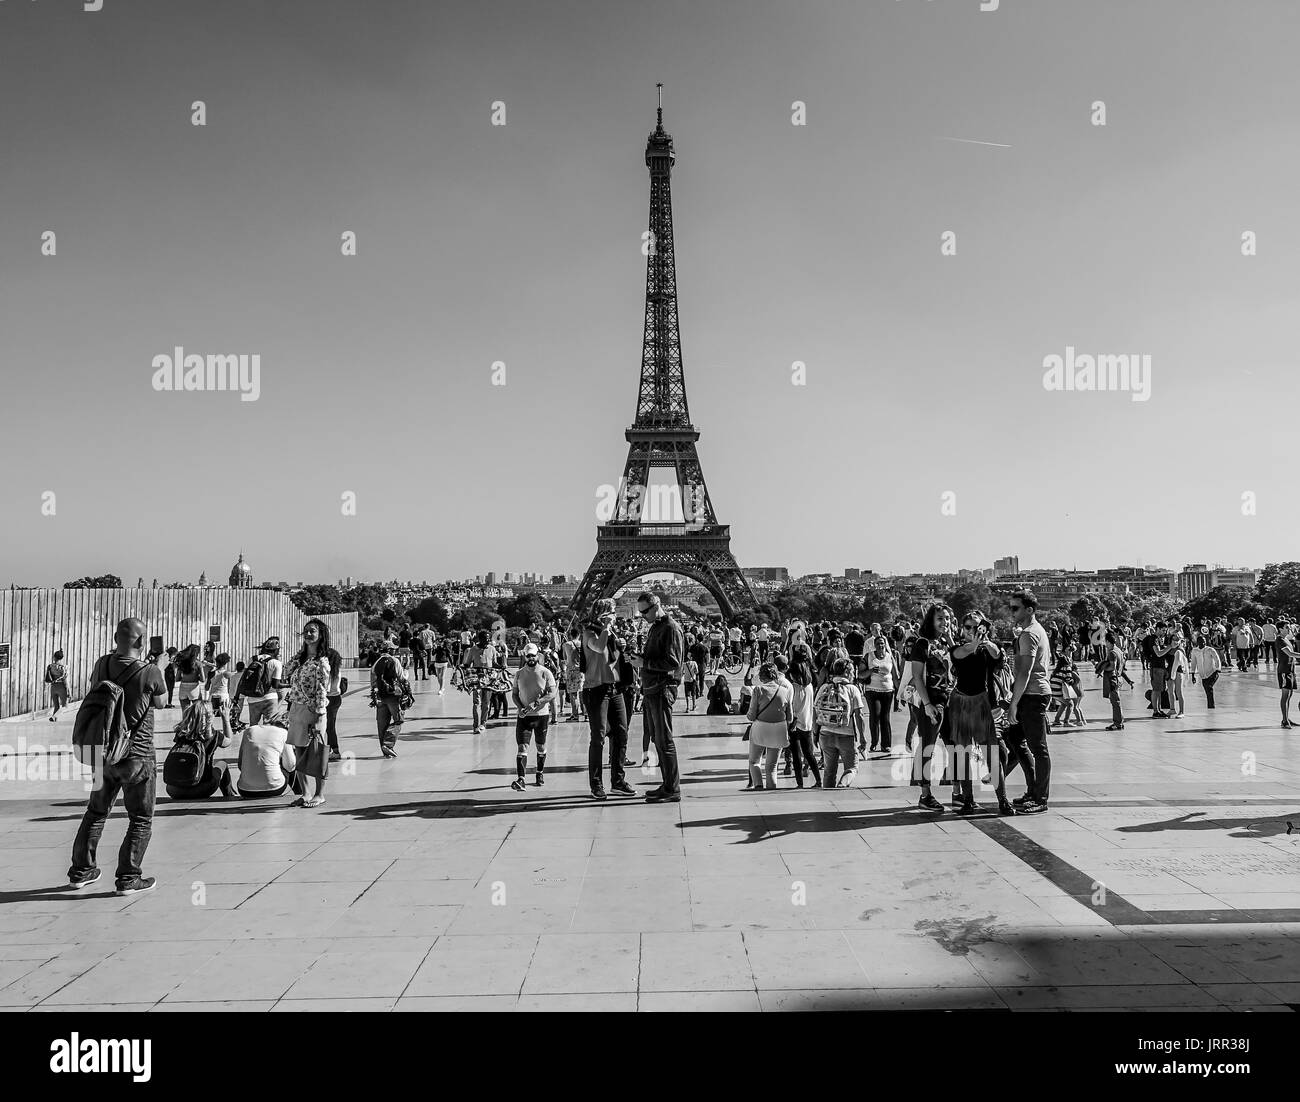 Paris Trocadero square with a view to Eiffel Tower - PARIS / FRANCE - SEPTEMBER 24, 2017 Stock Photo